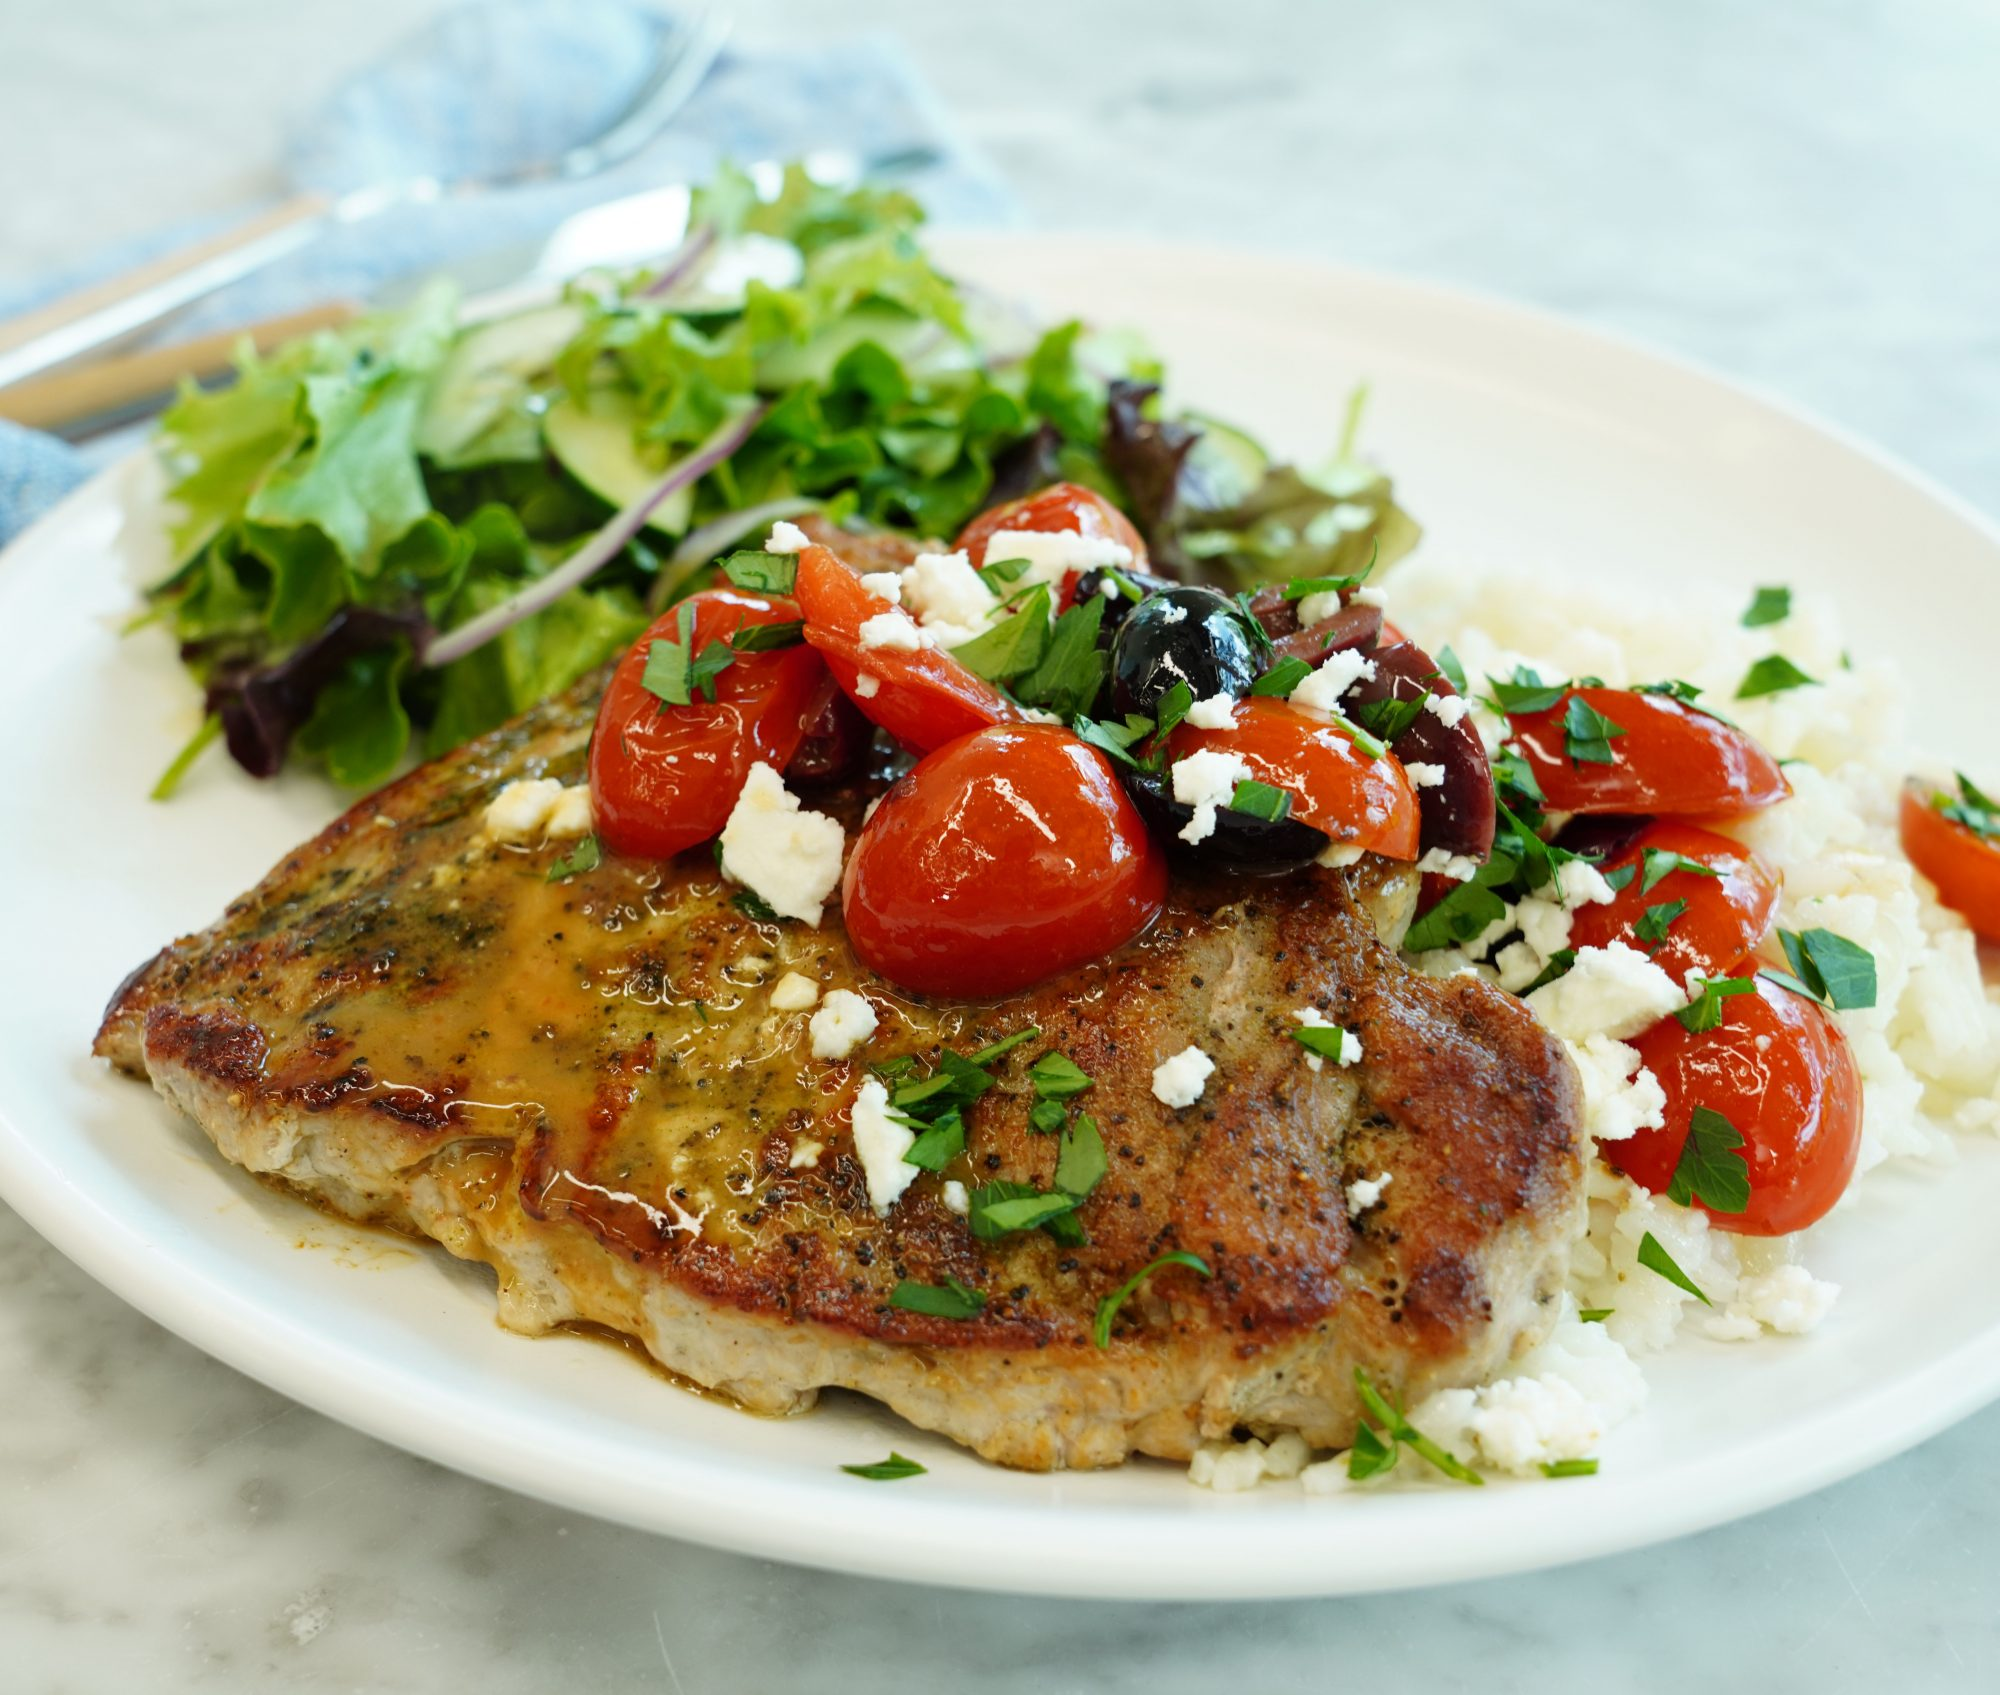 a browned pork chop topped with halved cherry tomatoes, crumbled feta, and kalamata olives on a plate with mixed greens in the background